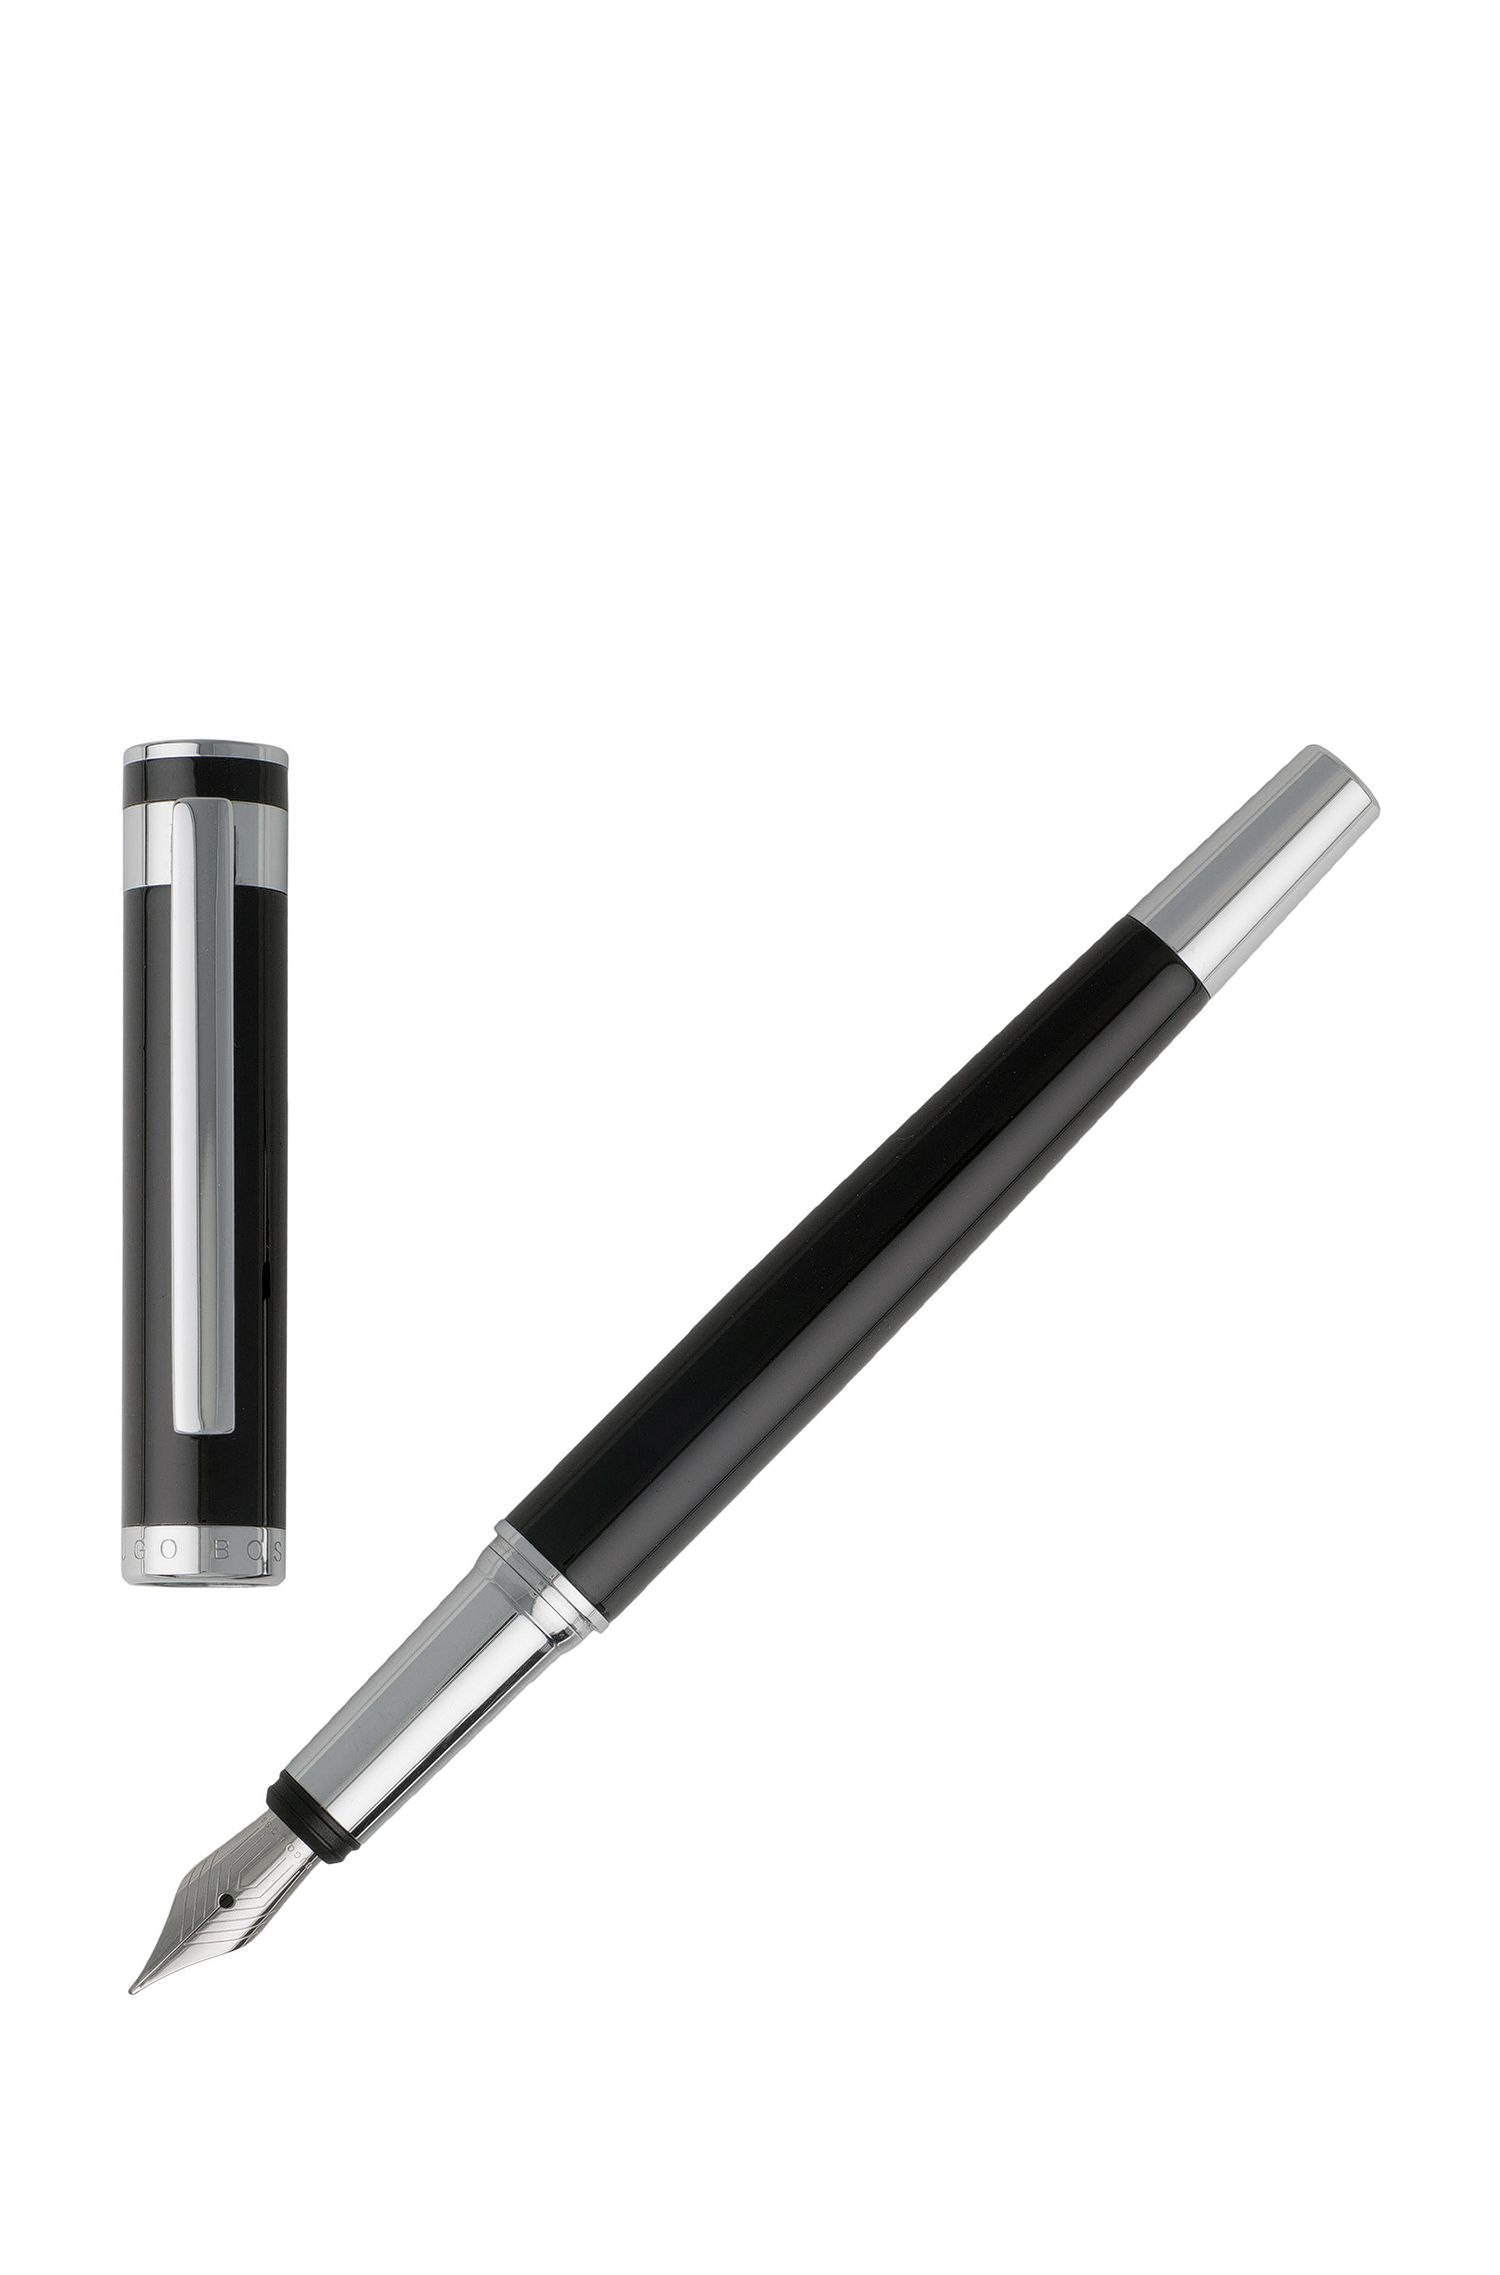 Fountain pen in glossy black lacquer